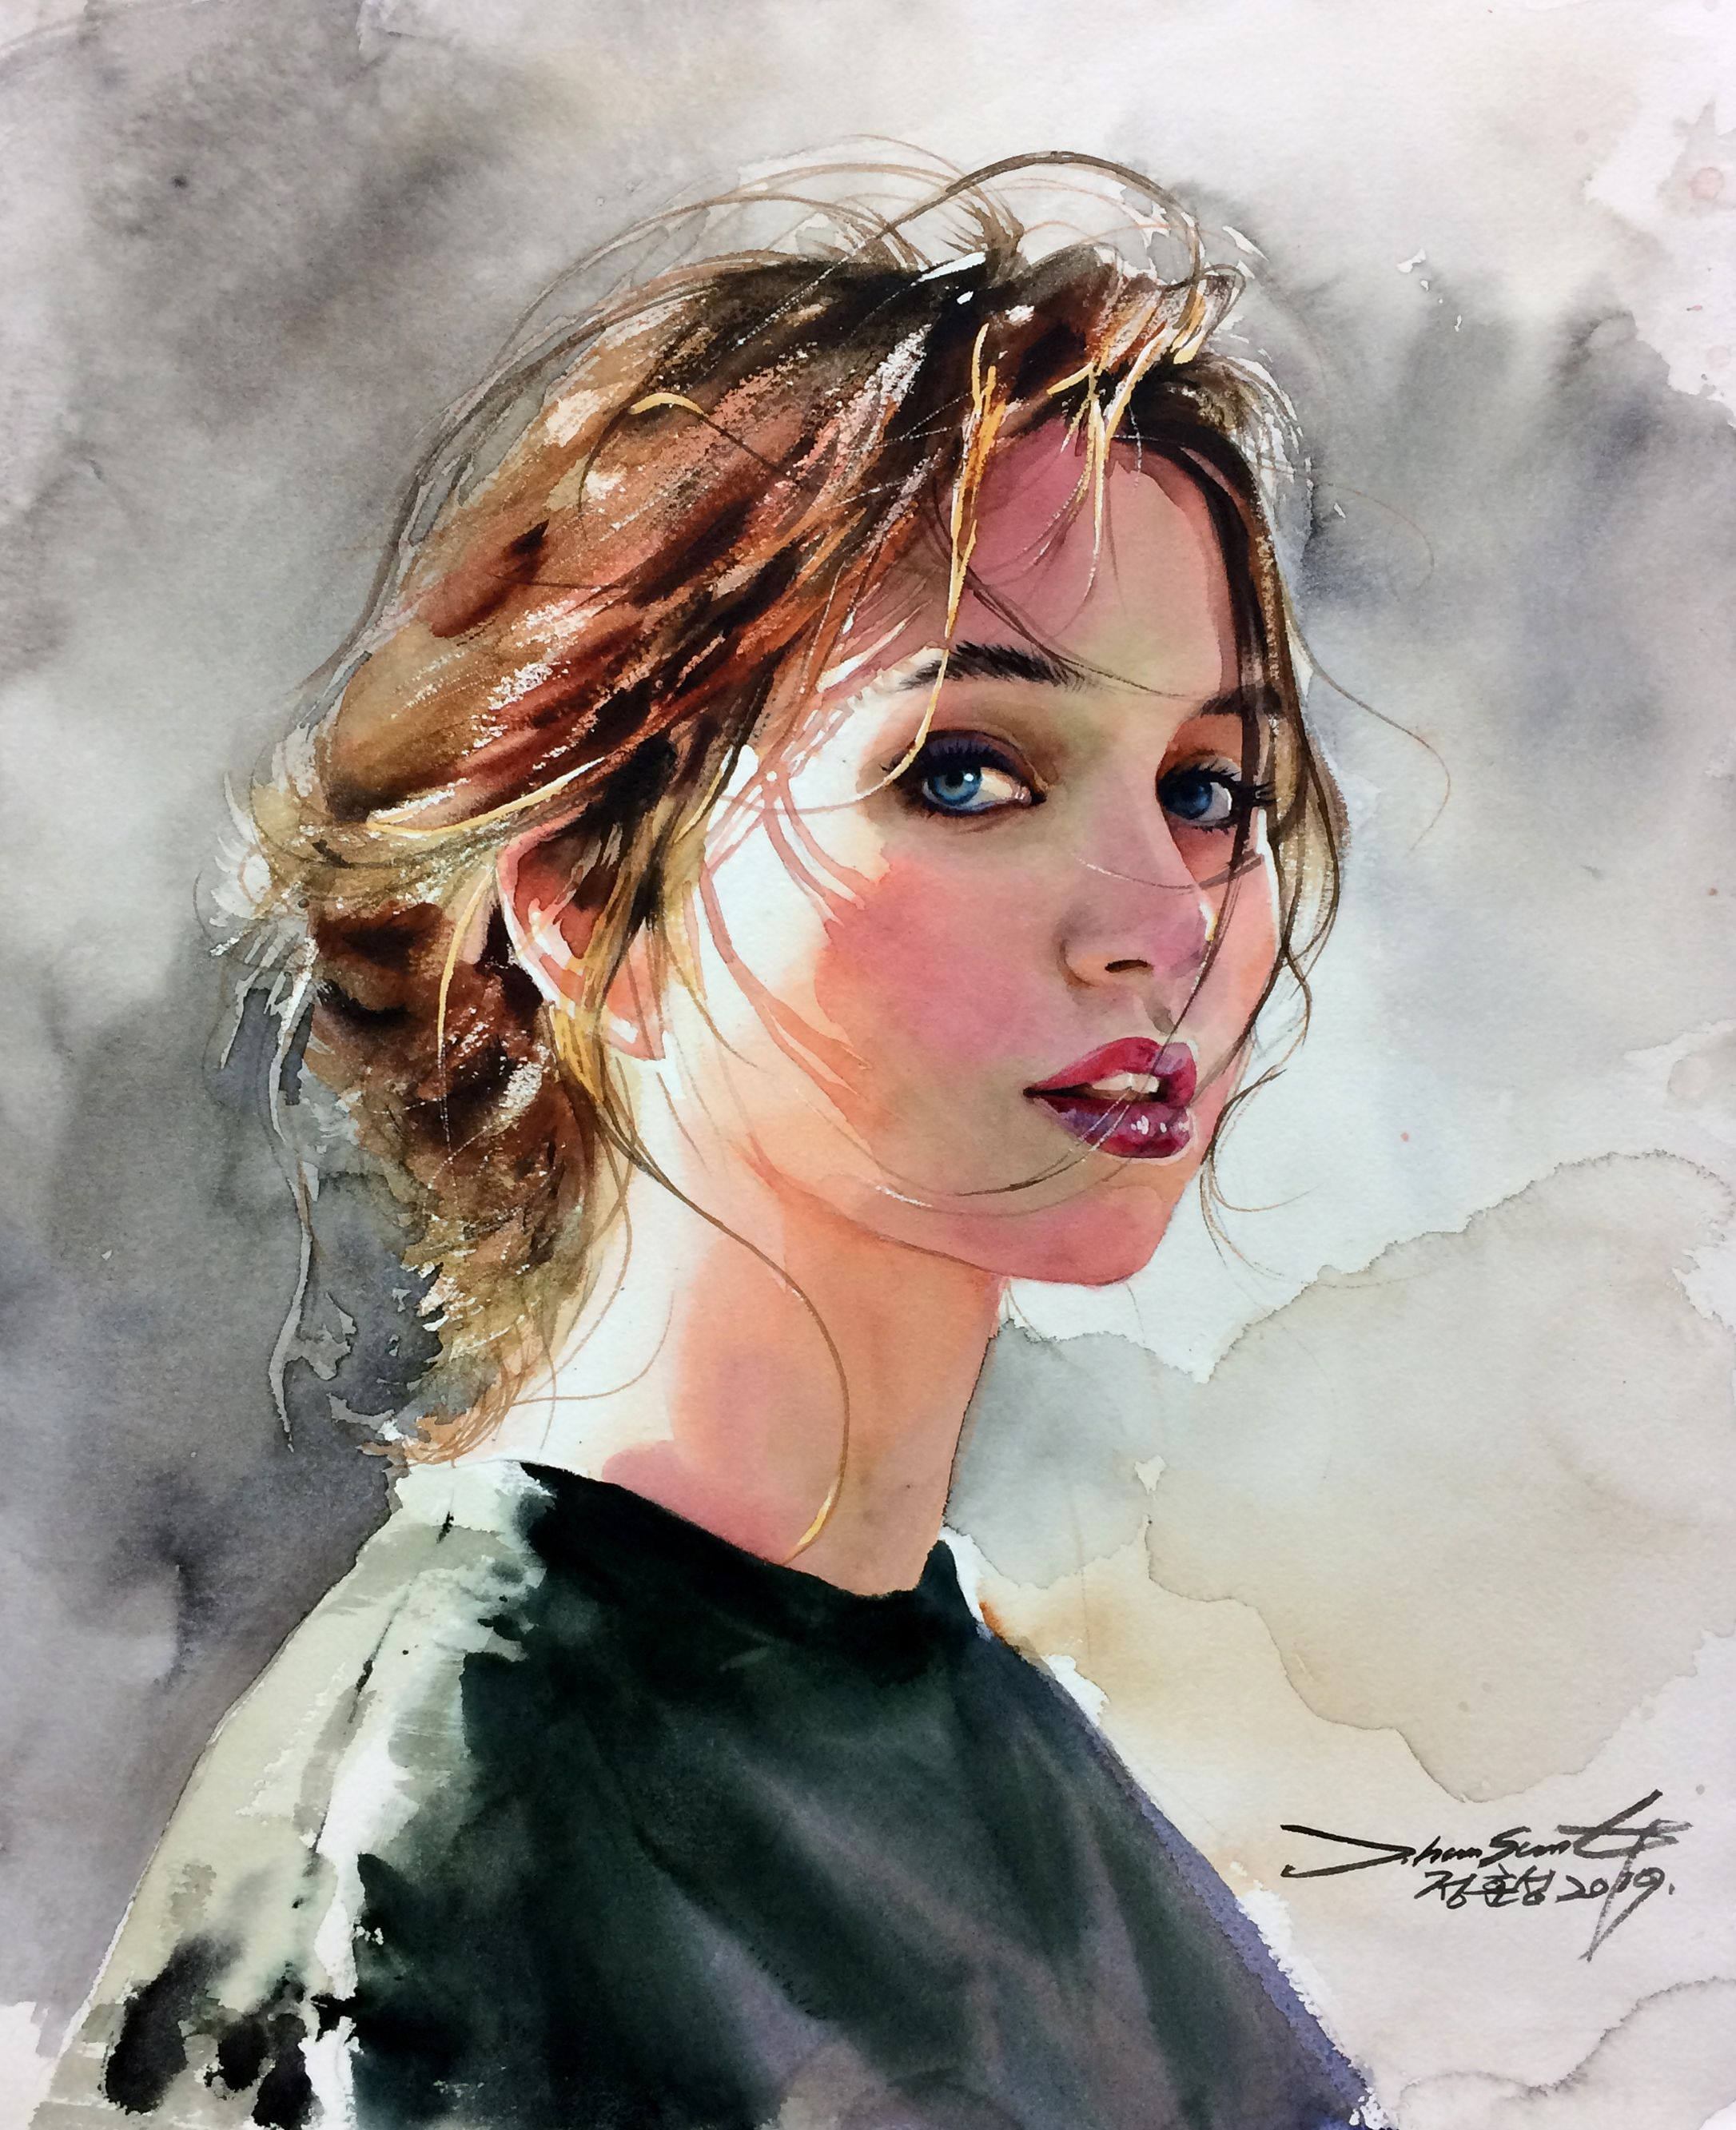 Epingle Par Jalluc Sur Inspirations Aquarelles Portrait Dessin